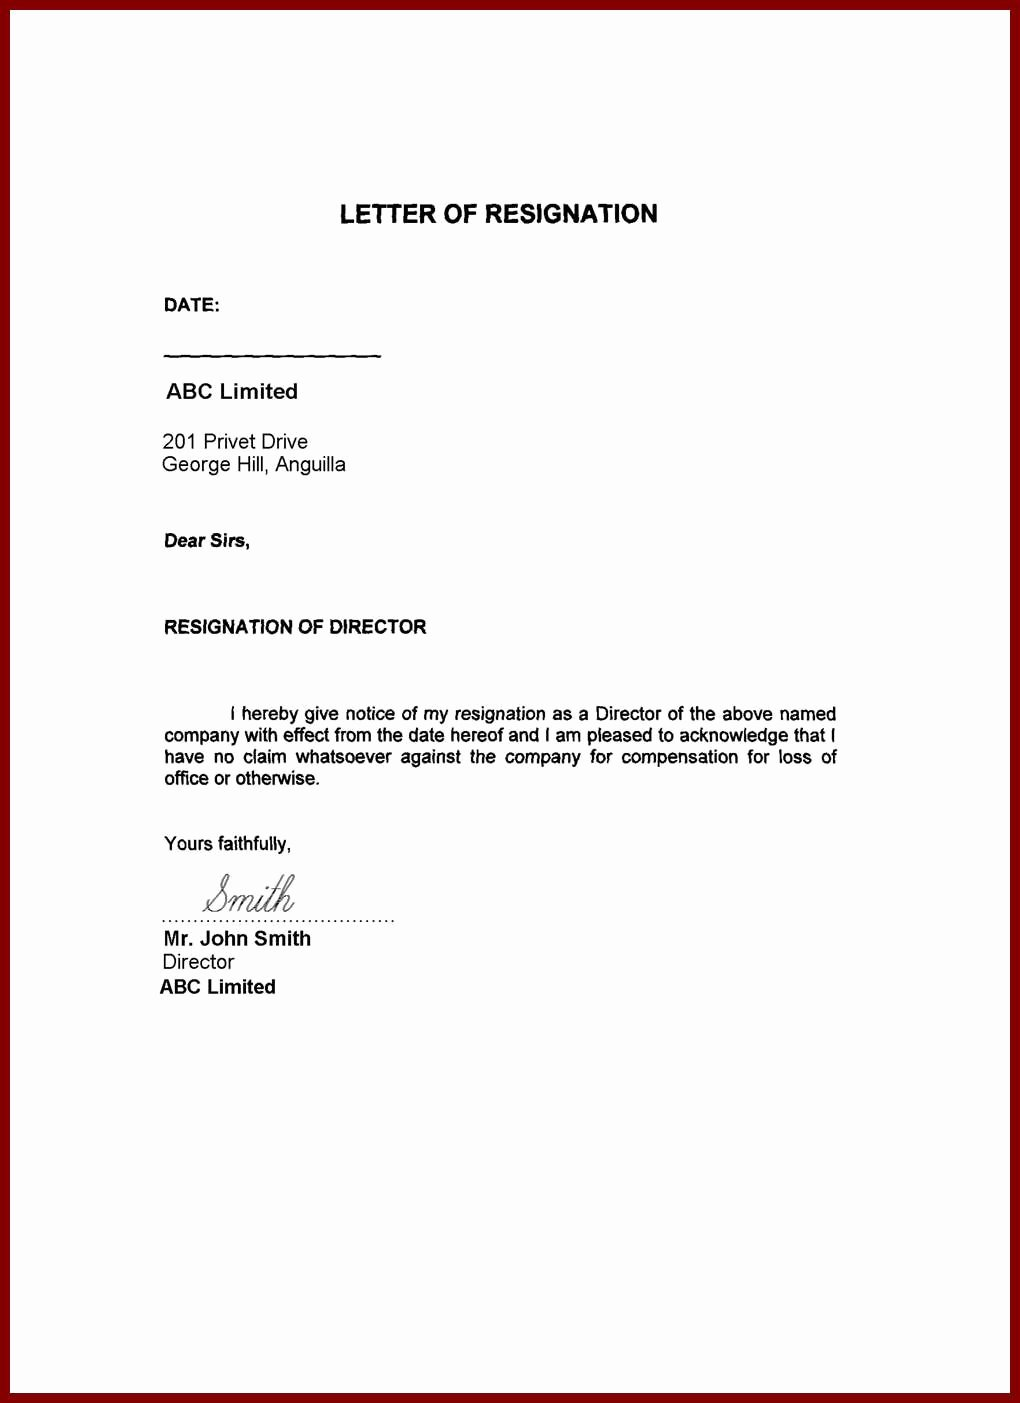 Resignation Letter In Word Inspirational Image Result for Resignation Letter Word format Family